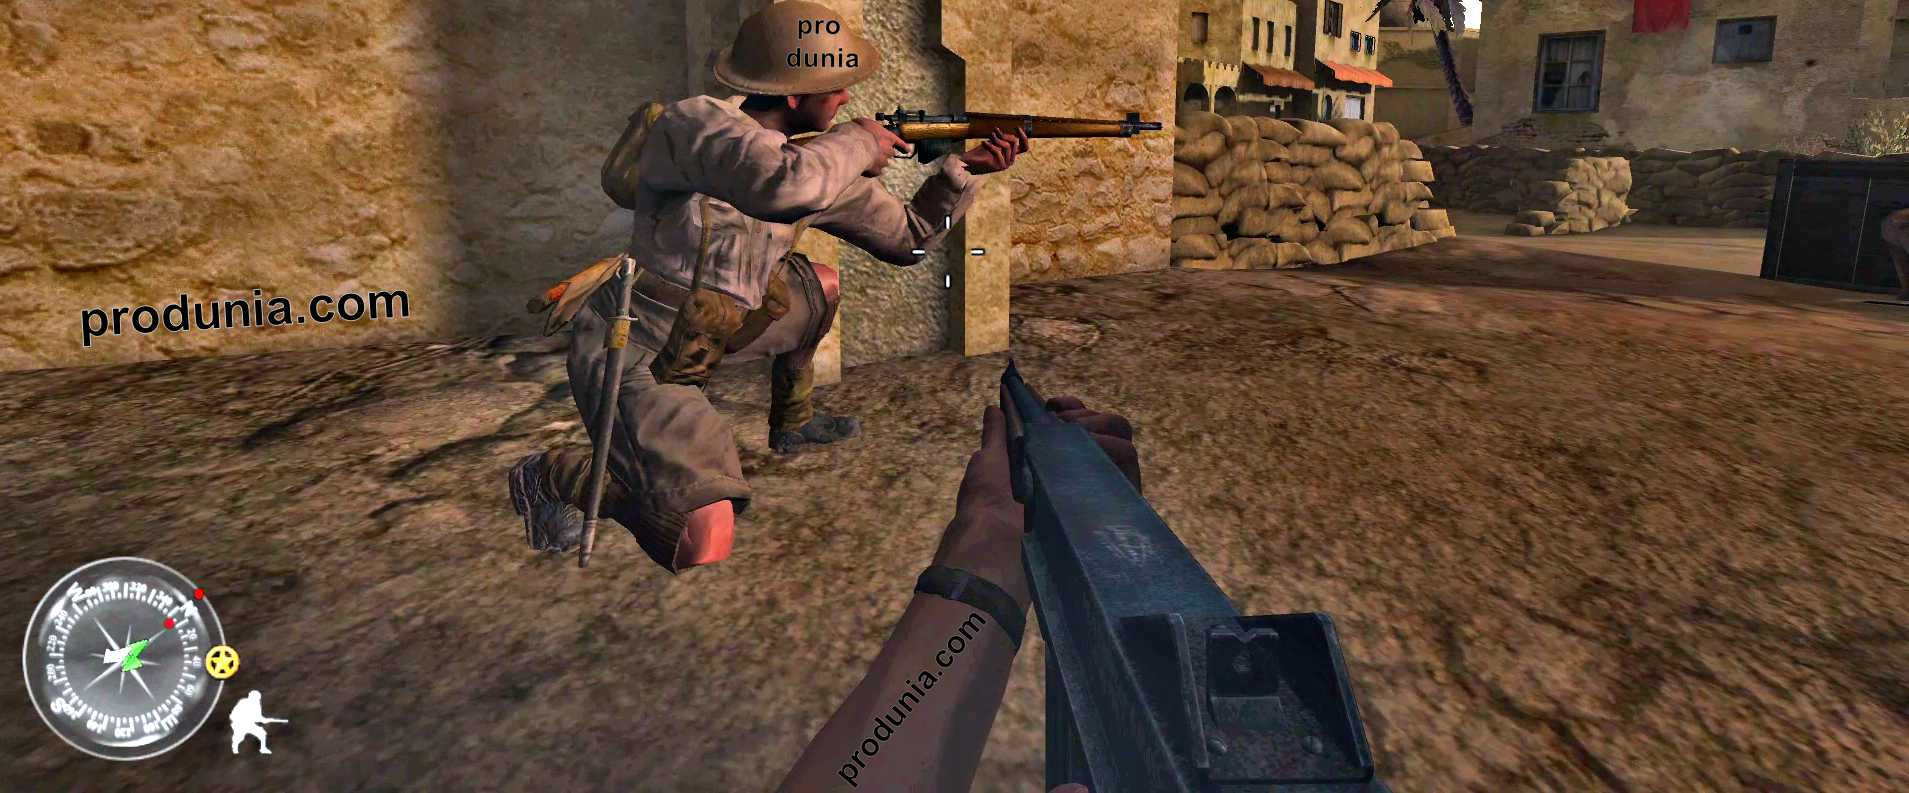 call of duty 2 download free for pc